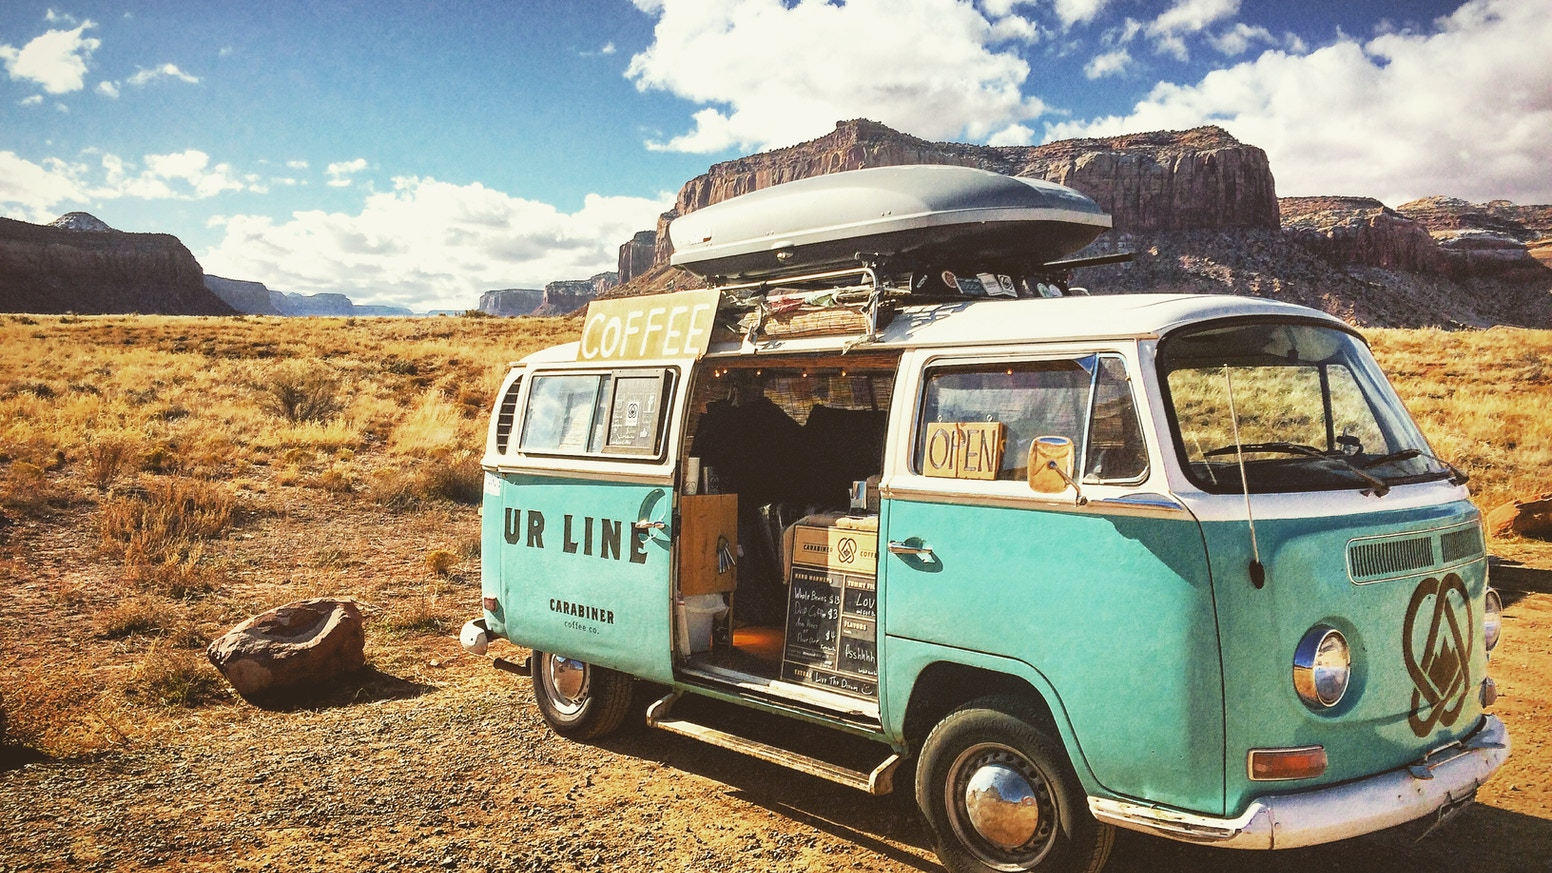 After two years of roaming the west Carabiner Coffee and Ol Blue need your help finding a place to set up shop and call it home!